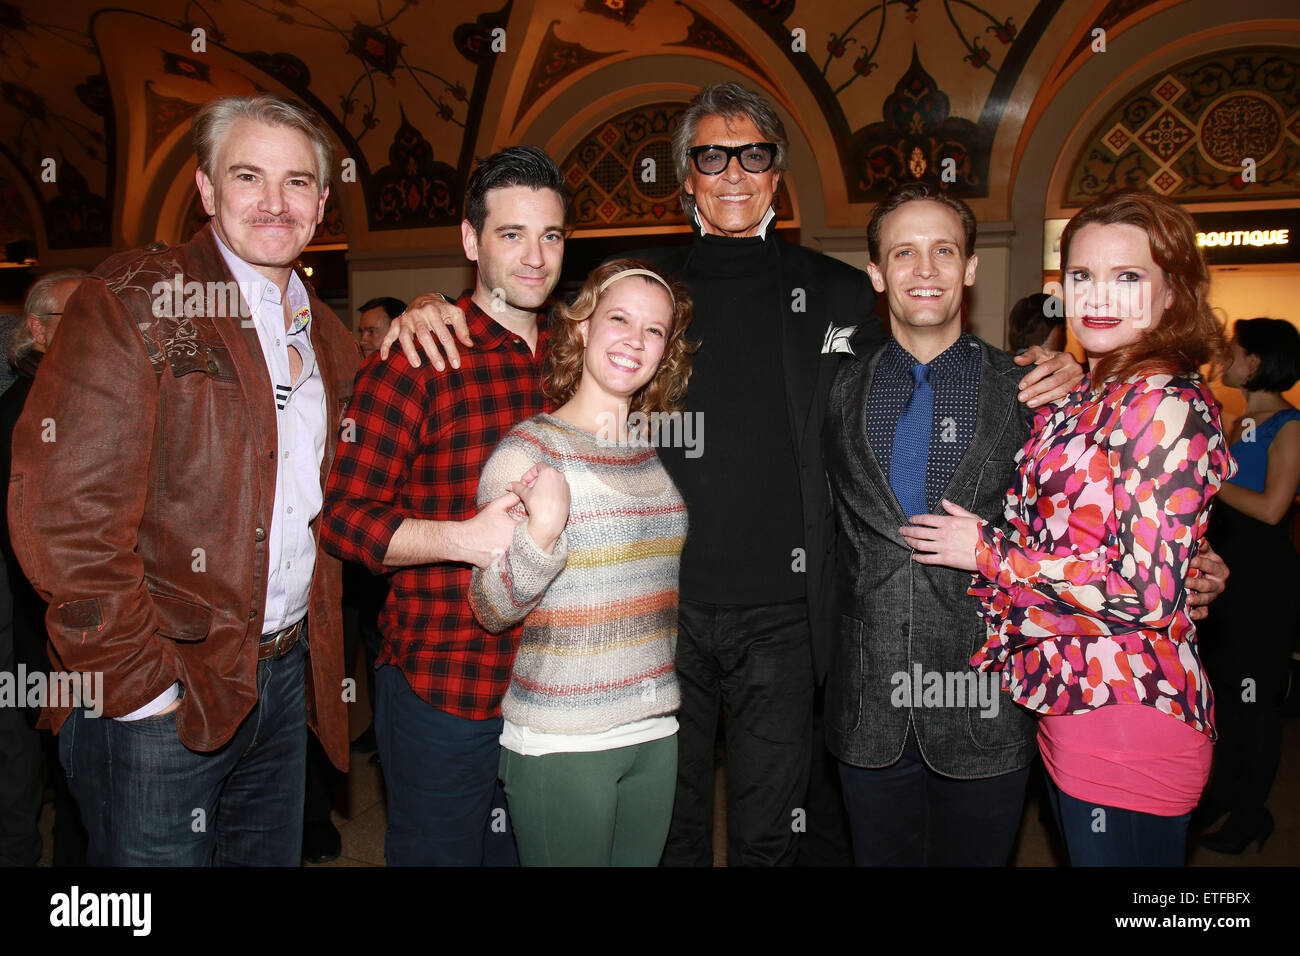 Closing night party for Encores! production of Lady Be Good at NY City Center.  Featuring: Douglas Sills, Colin - Stock Image